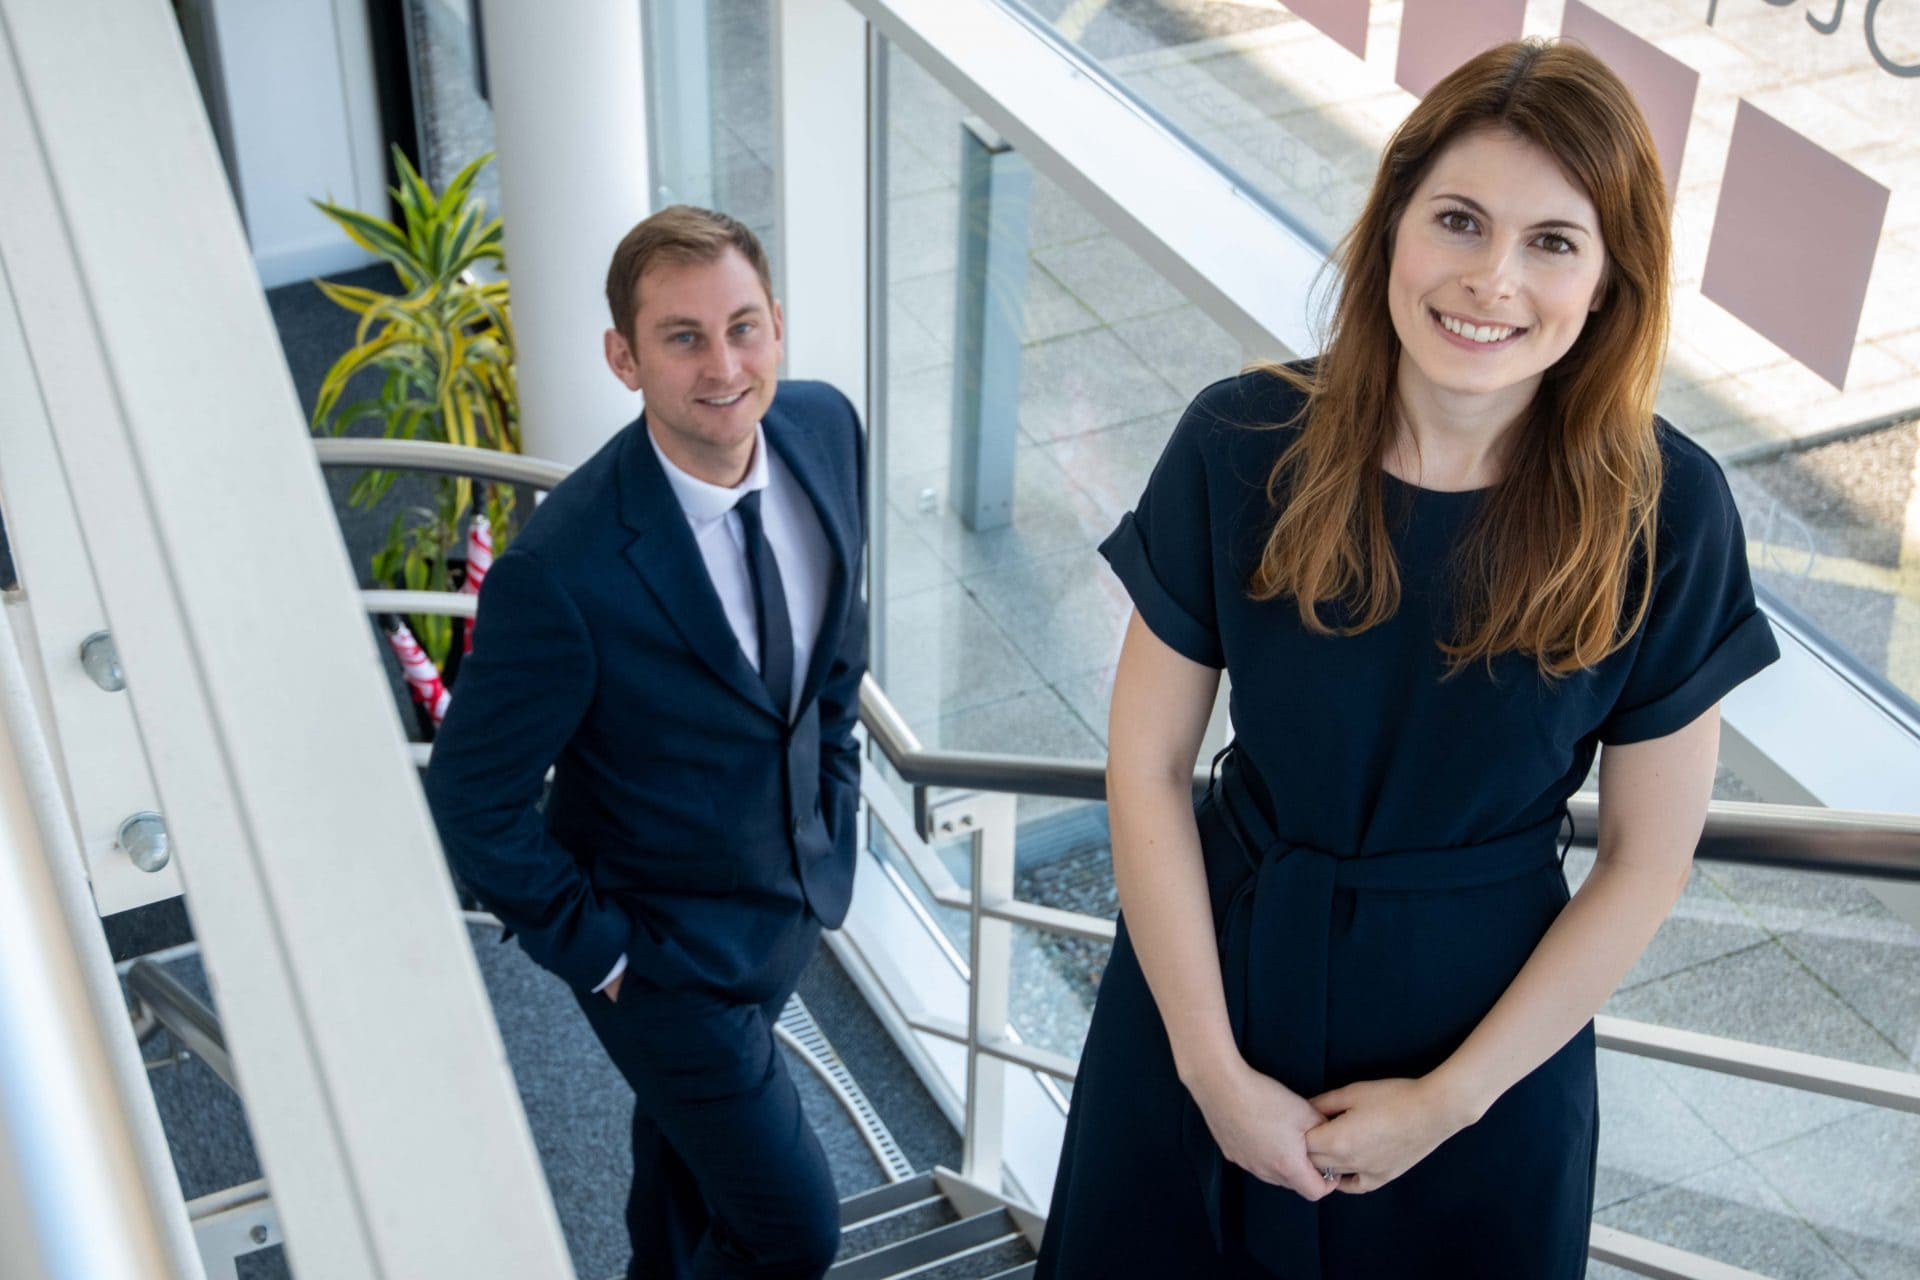 Kerry Williams and Alex Salmon, Associate Directors at Stephenson Smart